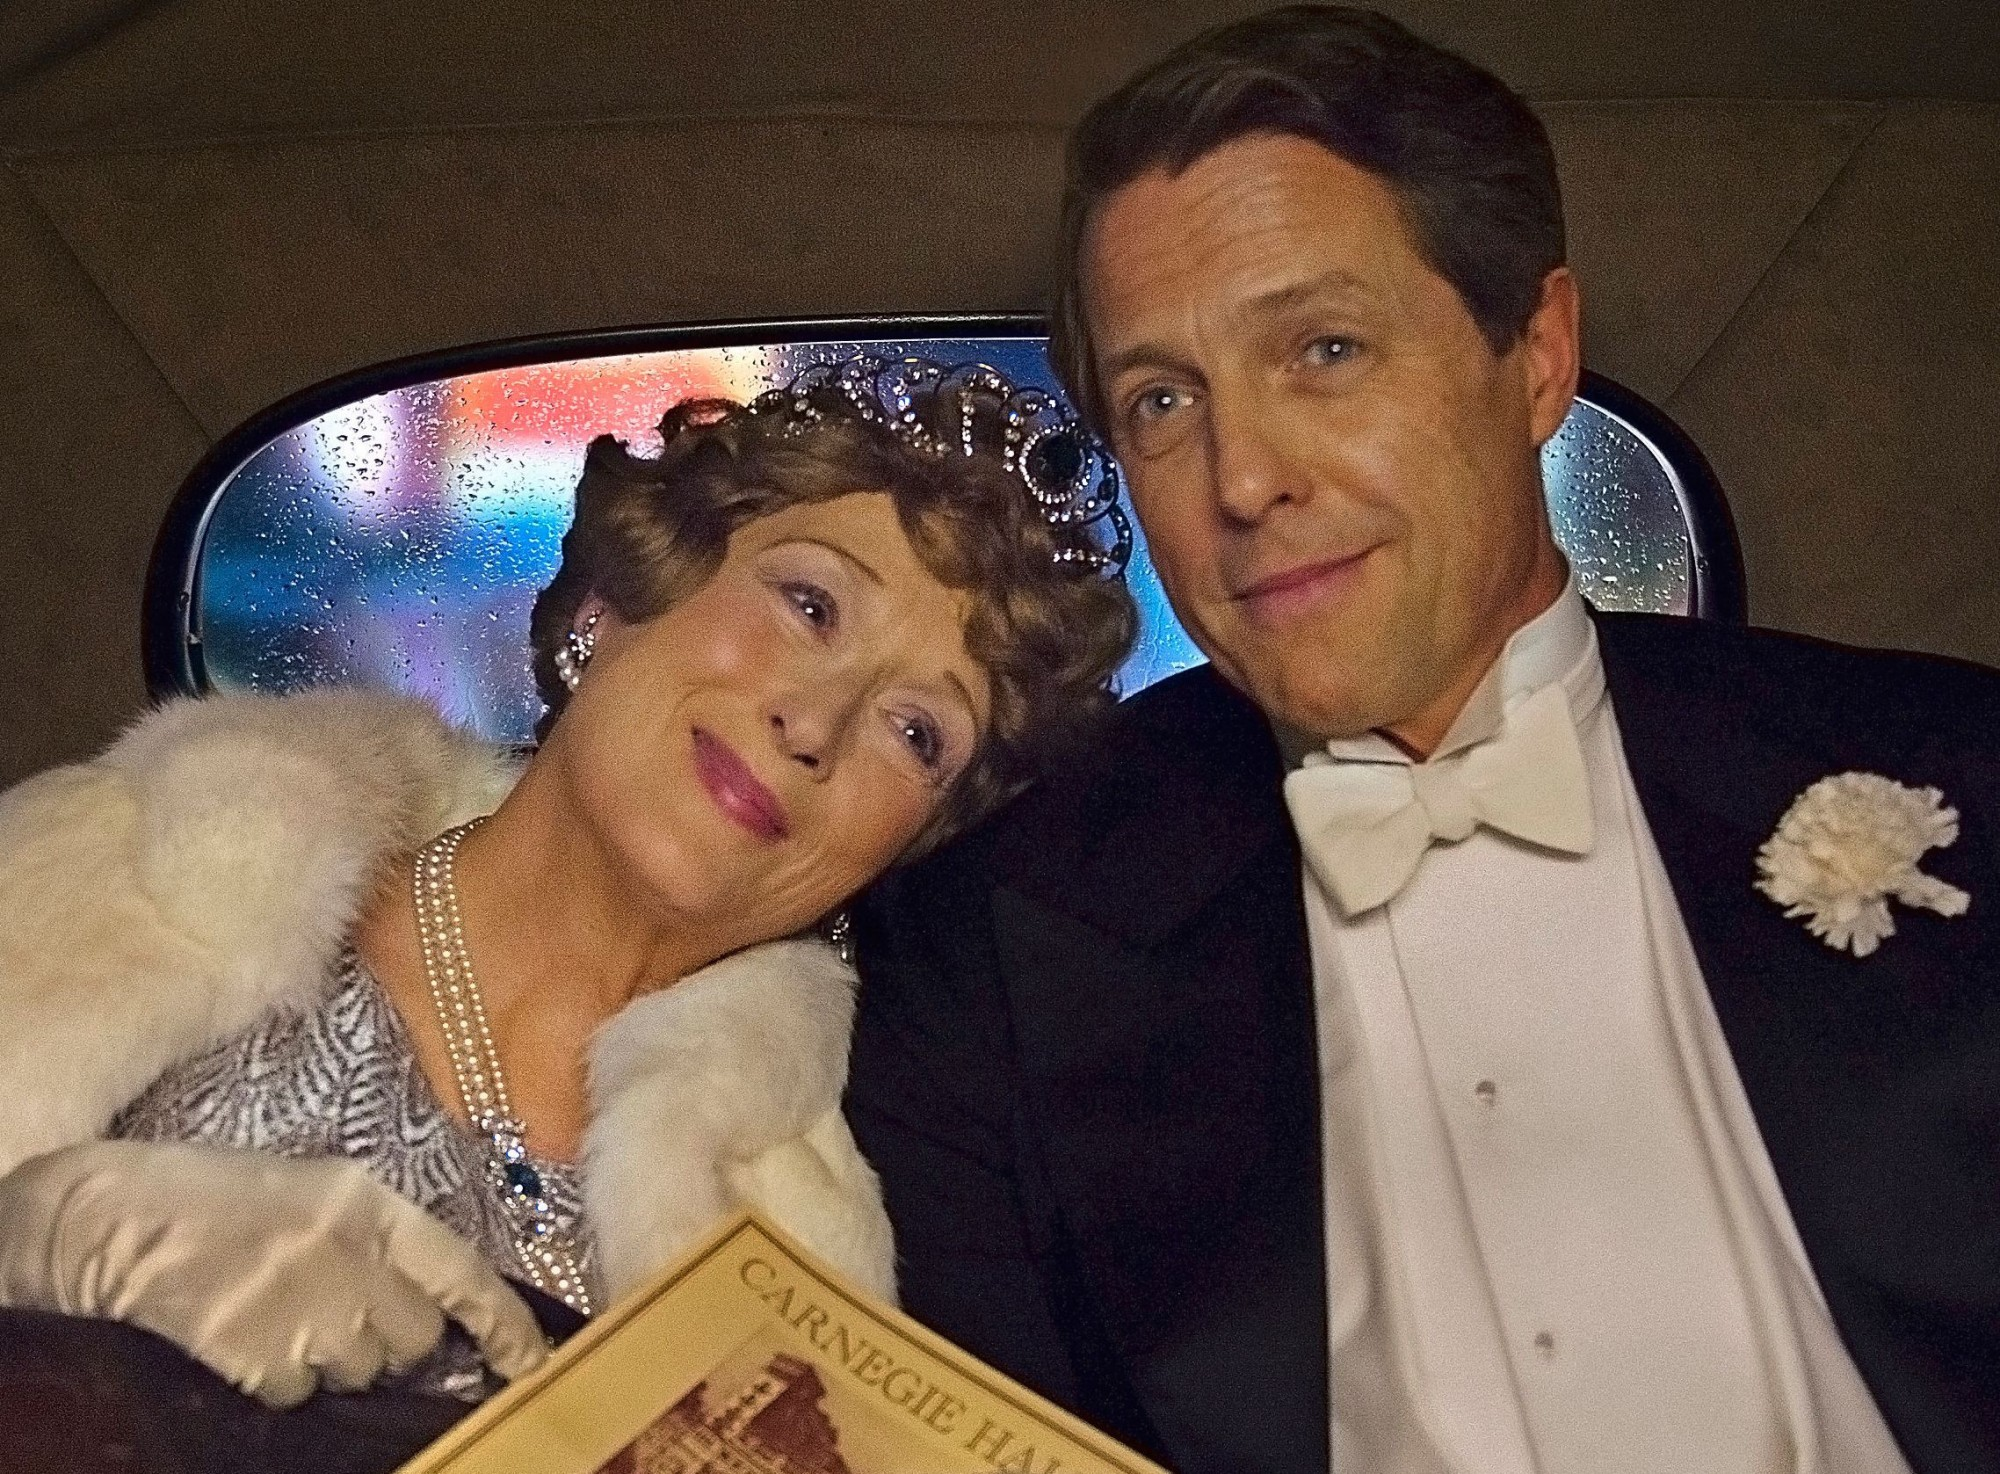 Meryl Streep and Hugh Grant in a scene from 'Florence Foster Jenkins' (credit: Pathe)